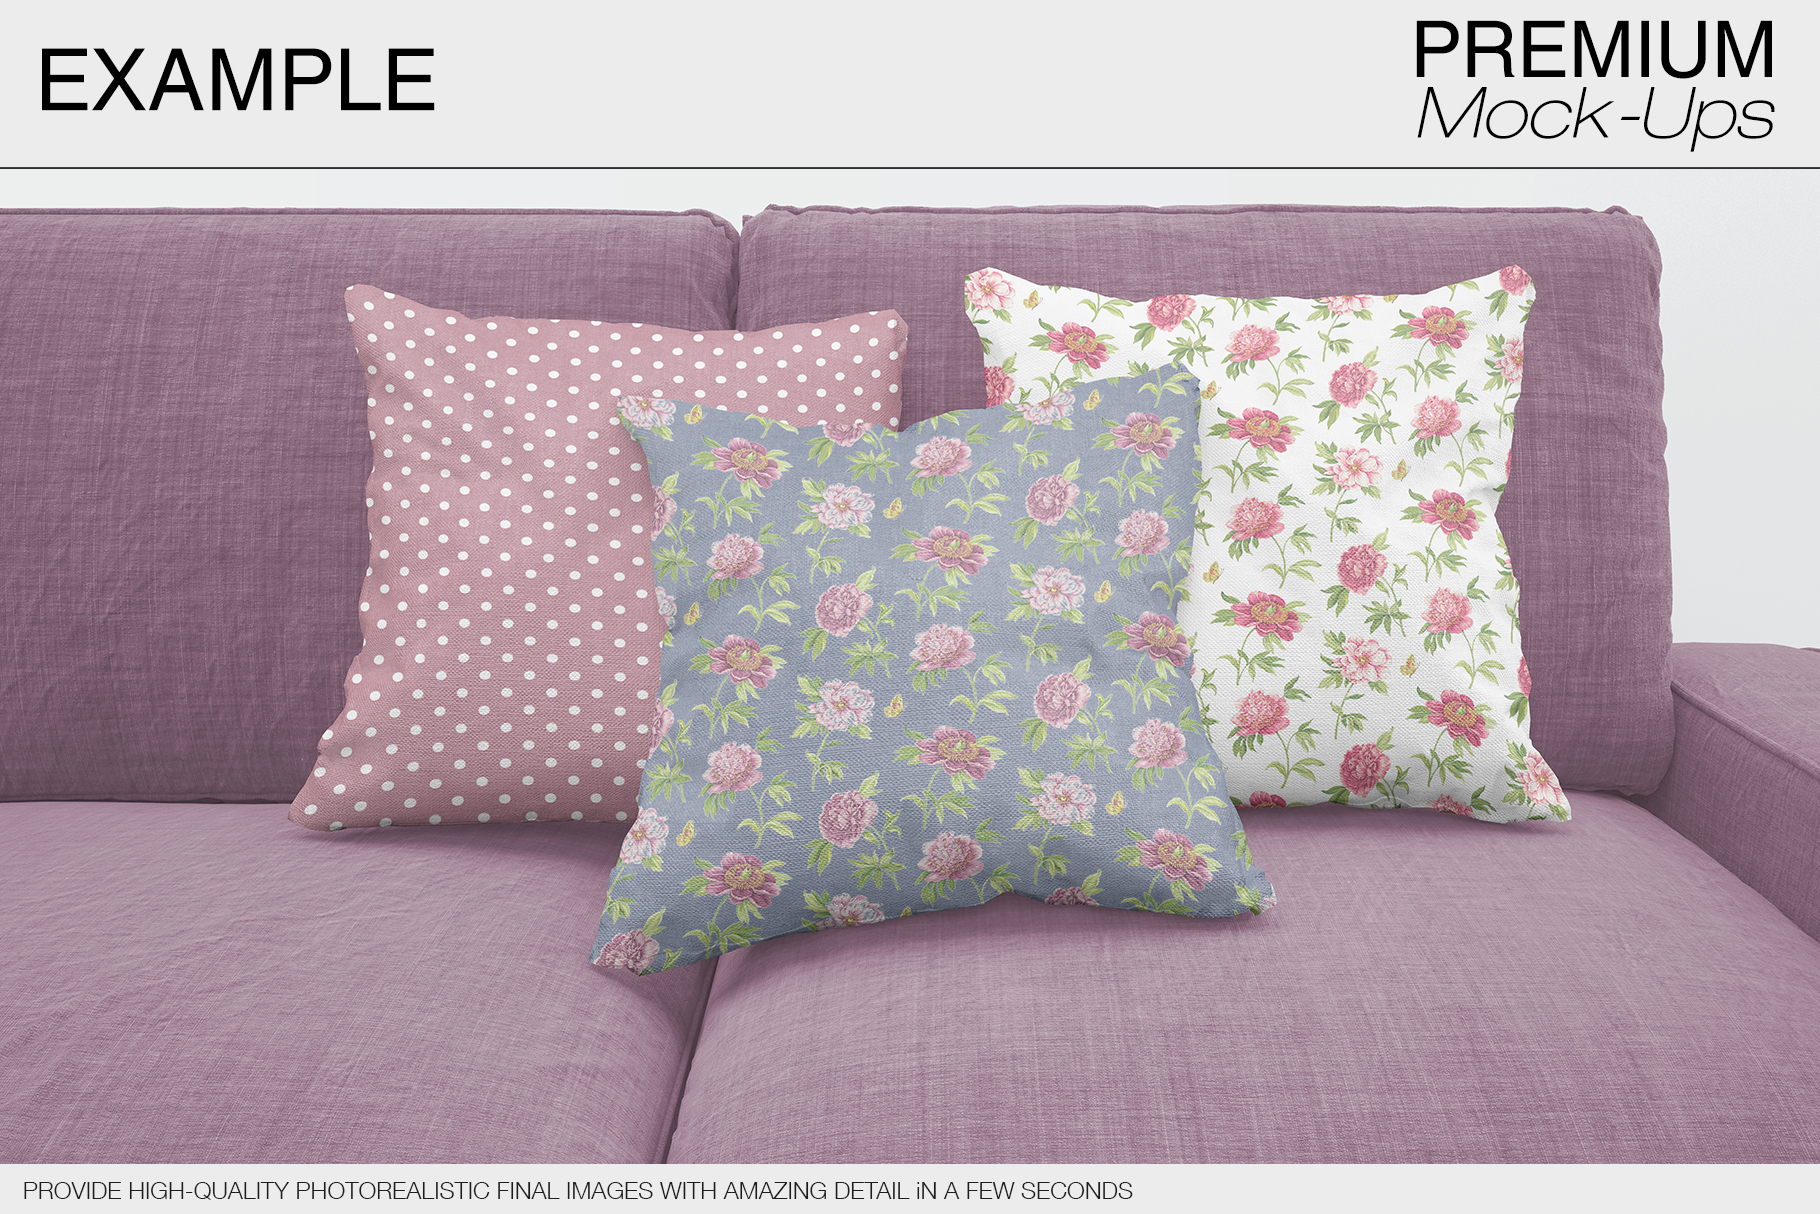 Pillow Mockups example image 8